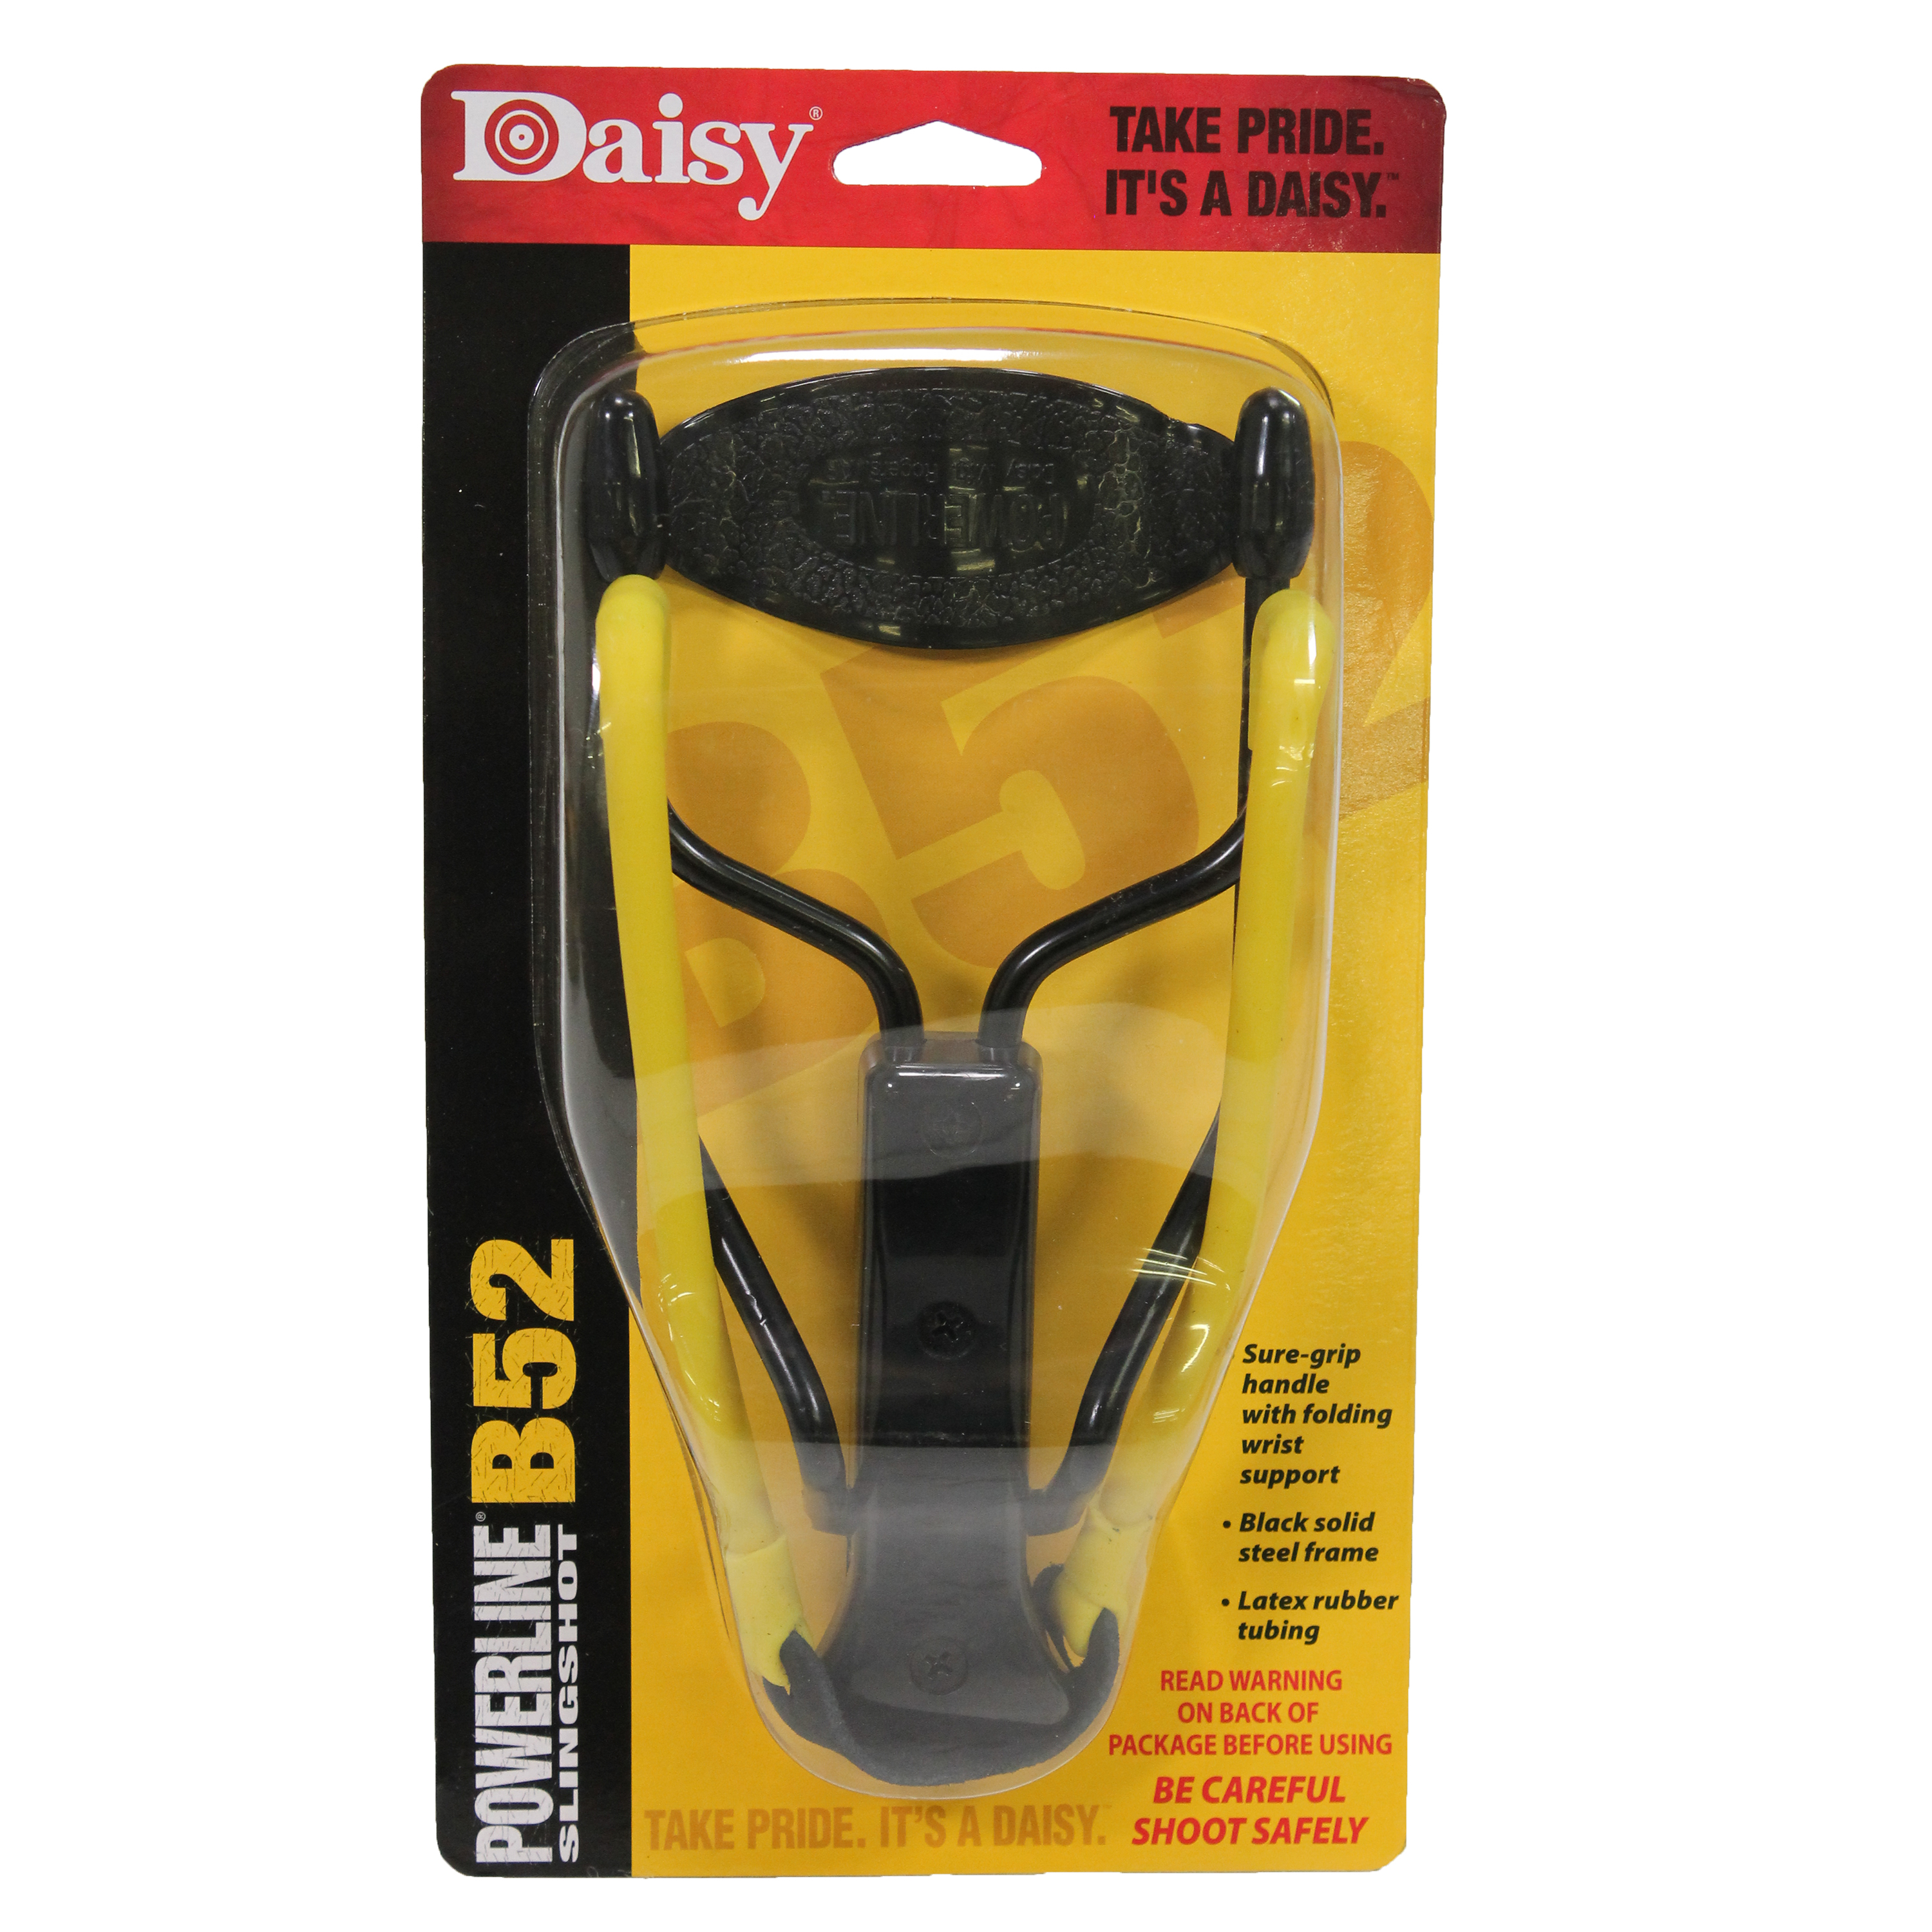 Daisy B52 Slingshot by Daisy Outdoor Products